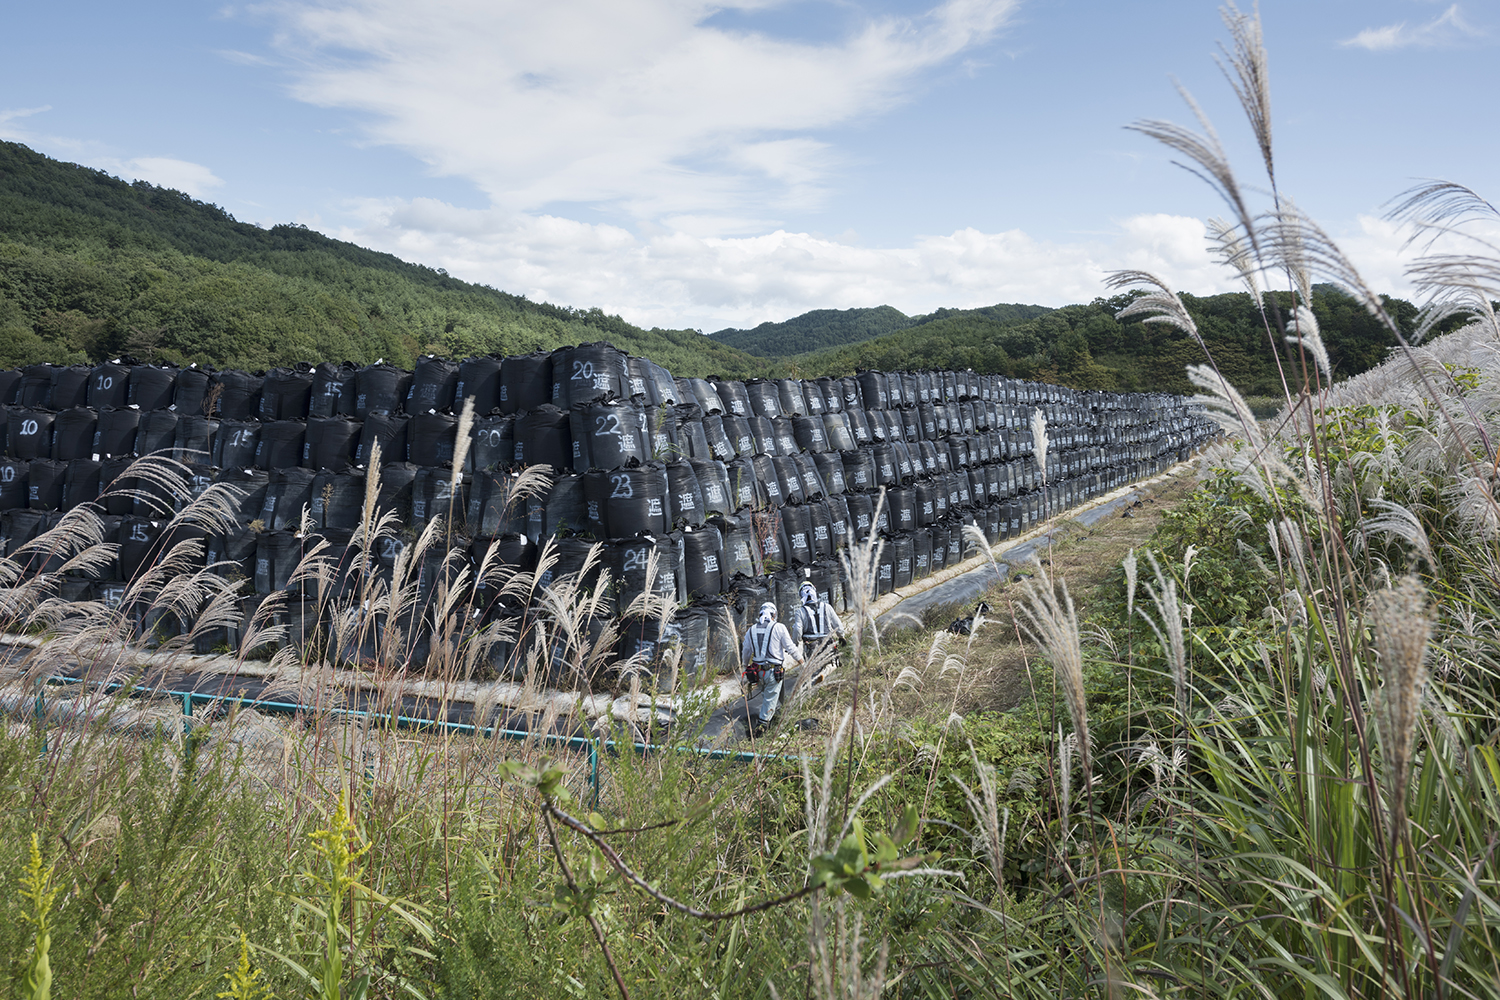 Nuclear waste storage area in Iitate, Fukushima prefecture in Japan. Adopting a return to normal policy, the Japanese government undertook an unprecedented decontamination program for areas of Fukushima contaminated by the tripe reactor meltdown in March 2011. Fukushima prefecture is 70 percent mountainous forest which has not and cannot be decontaminated, with decontamination efforts focused along roads and in towns, farmland and in narrow areas around people's houses. Even so, the result has been that the Japanese authorities have produced a nuclear waste crisis, with over 13 million cubic meters of waste located in 147,000 locations (as of July 2017). The Japanese government is determined to force people back to their homes despite the on-going radiation risks and the vast volumes of nuclear waste.